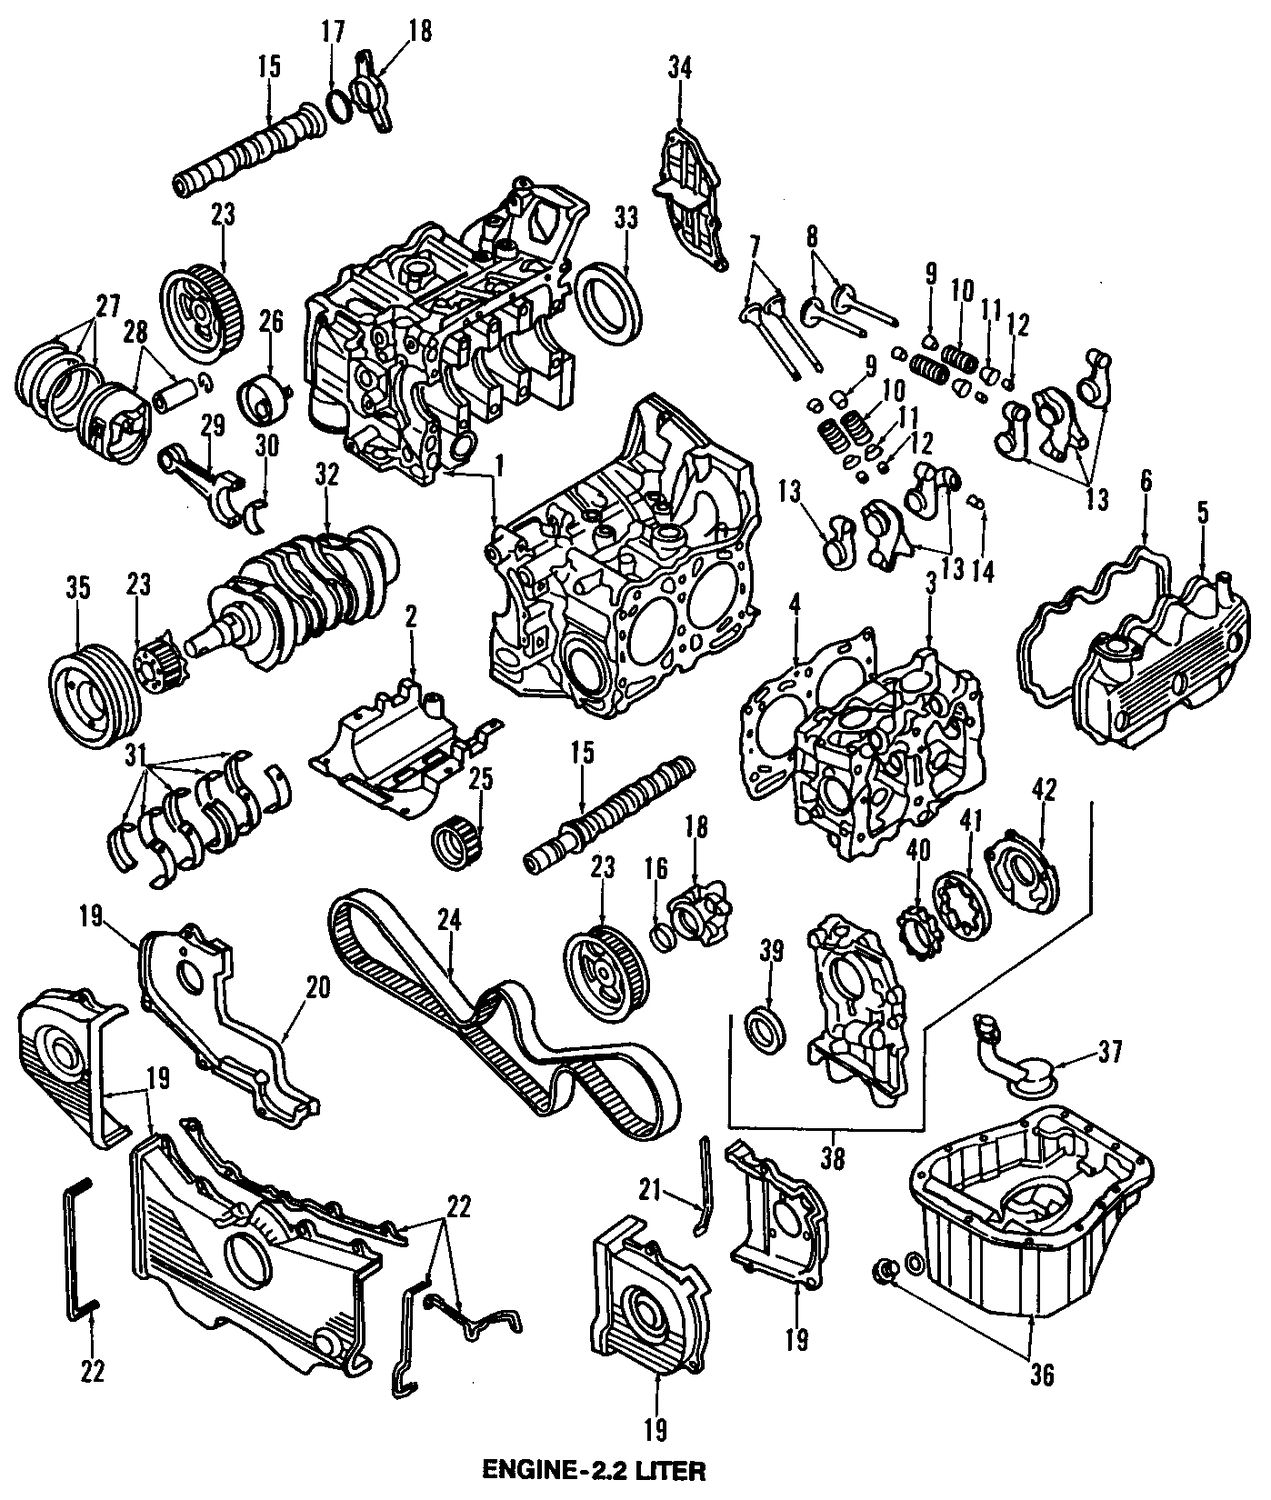 2007 Subaru Ej25 Engine Diagram Great Installation Of Wiring Boxer Timing Belt With Sti Third Level Rh 20 6 14 Jacobwinterstein Com Forester 1998